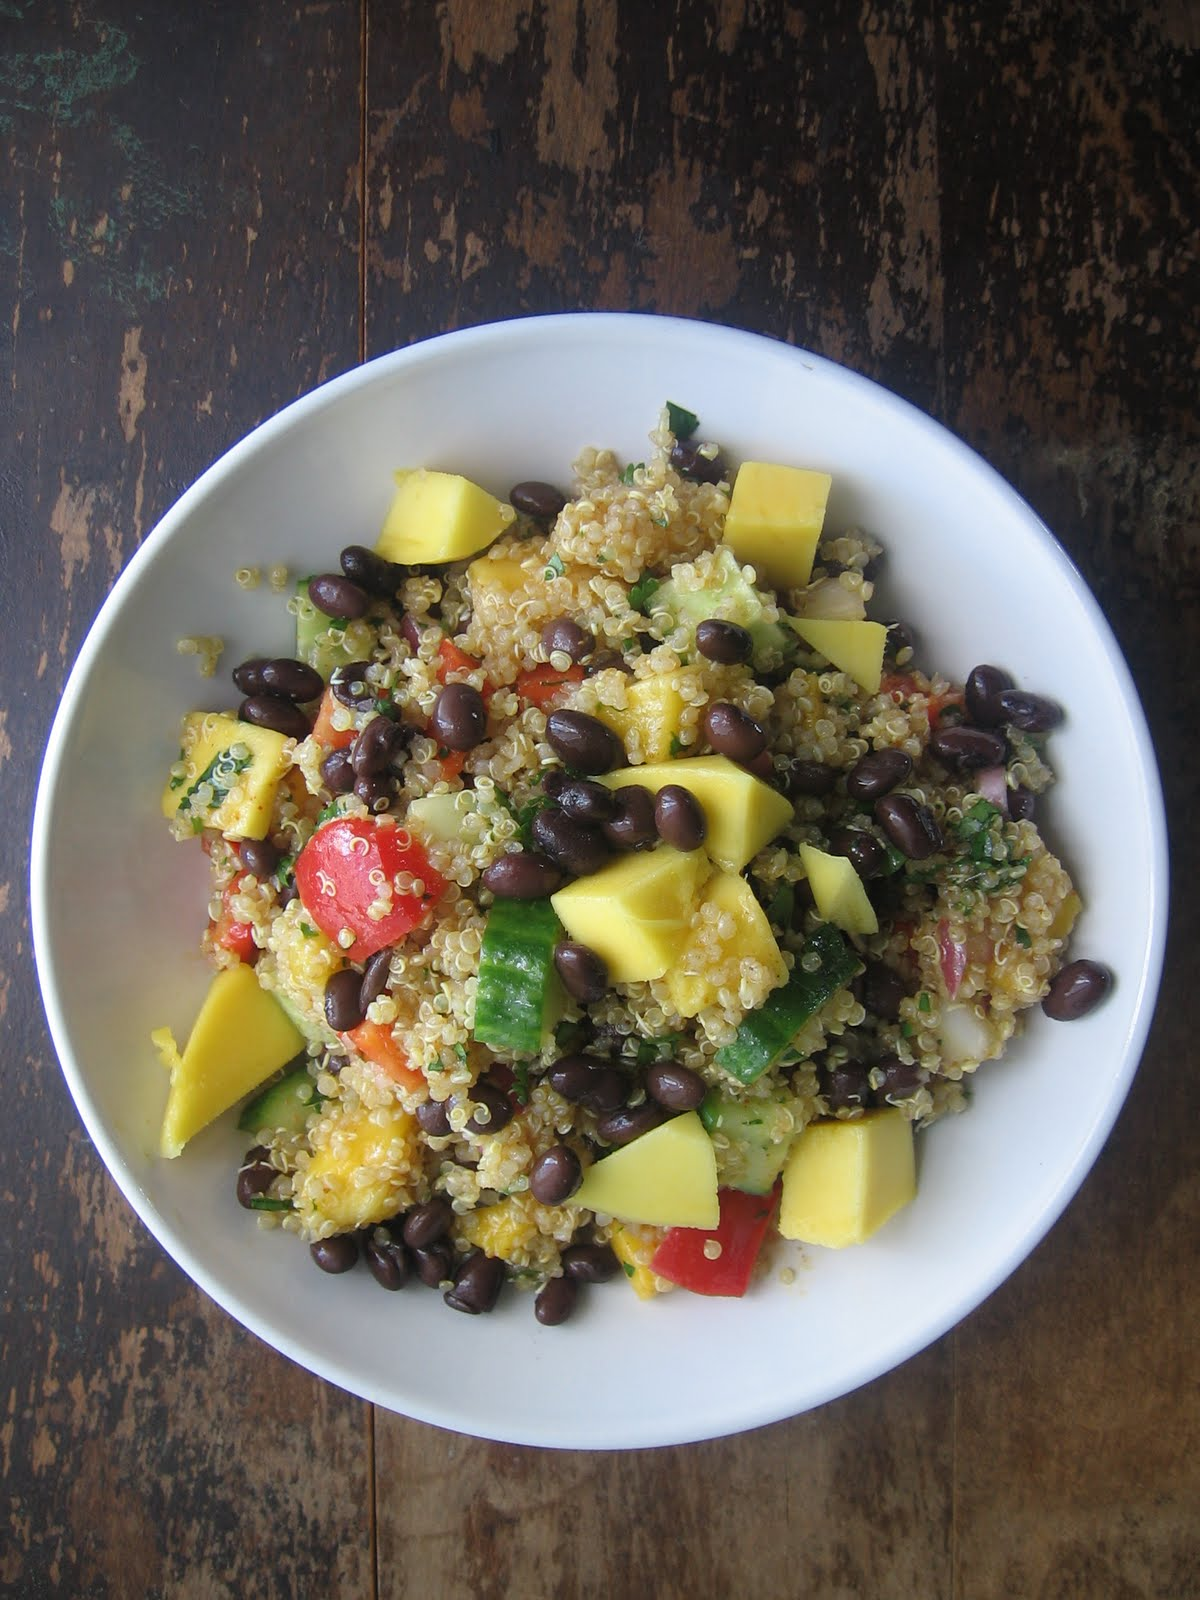 sweetsugarbean: Curried Quinoa Salad With Mango and Black Beans